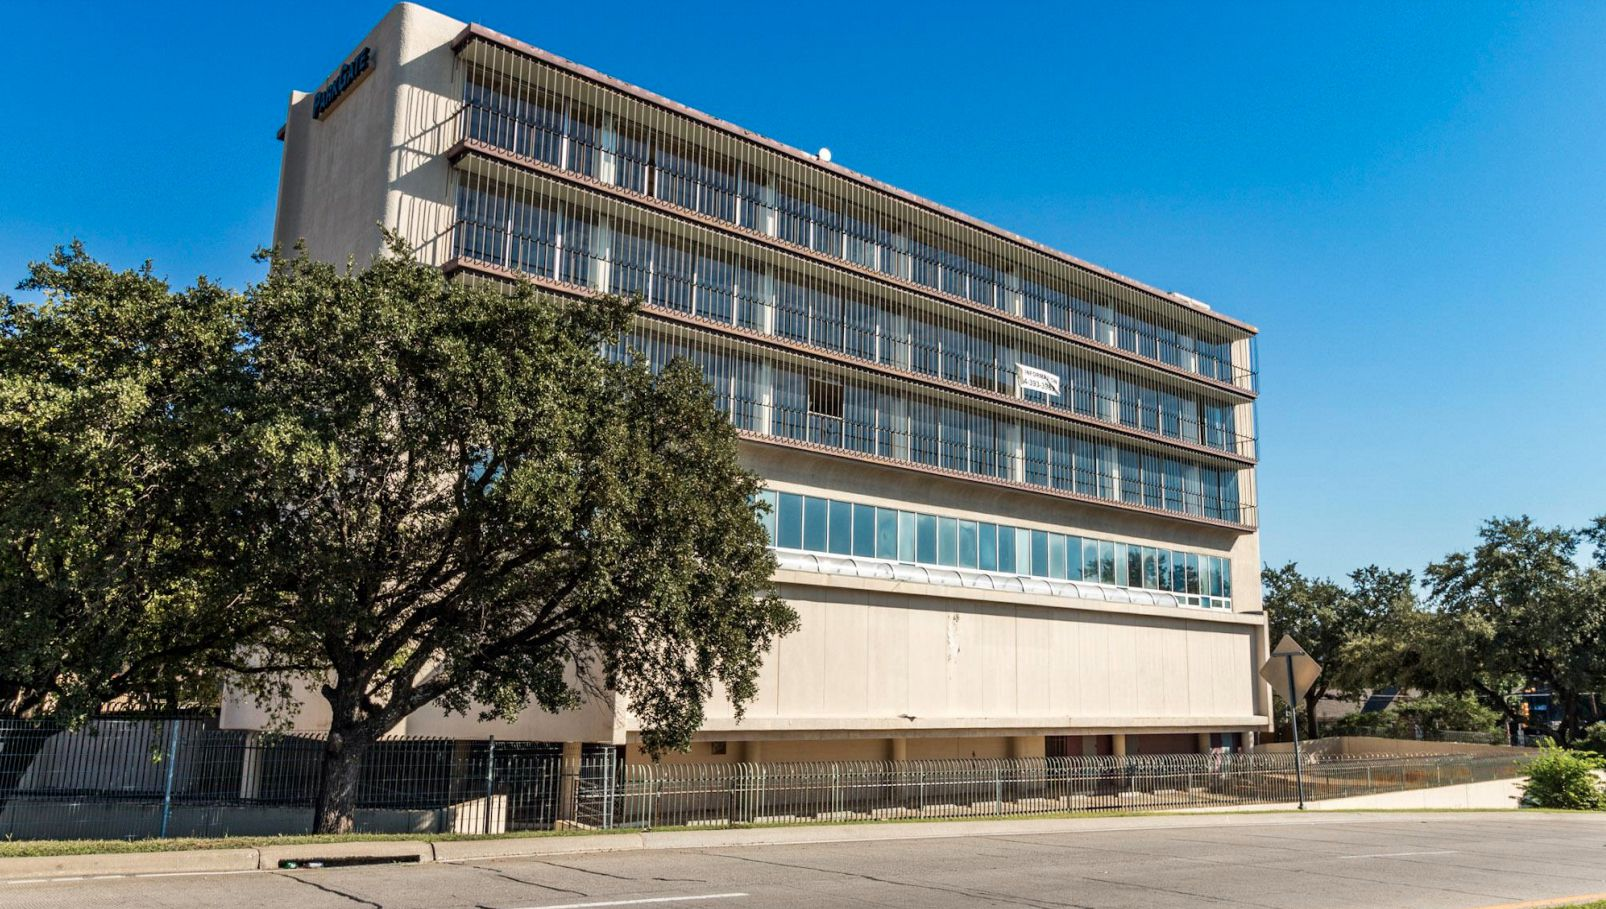 The former Braniff Hostess College on the Dallas North Tollway has been vacant for several years while developers studied new uses for the property